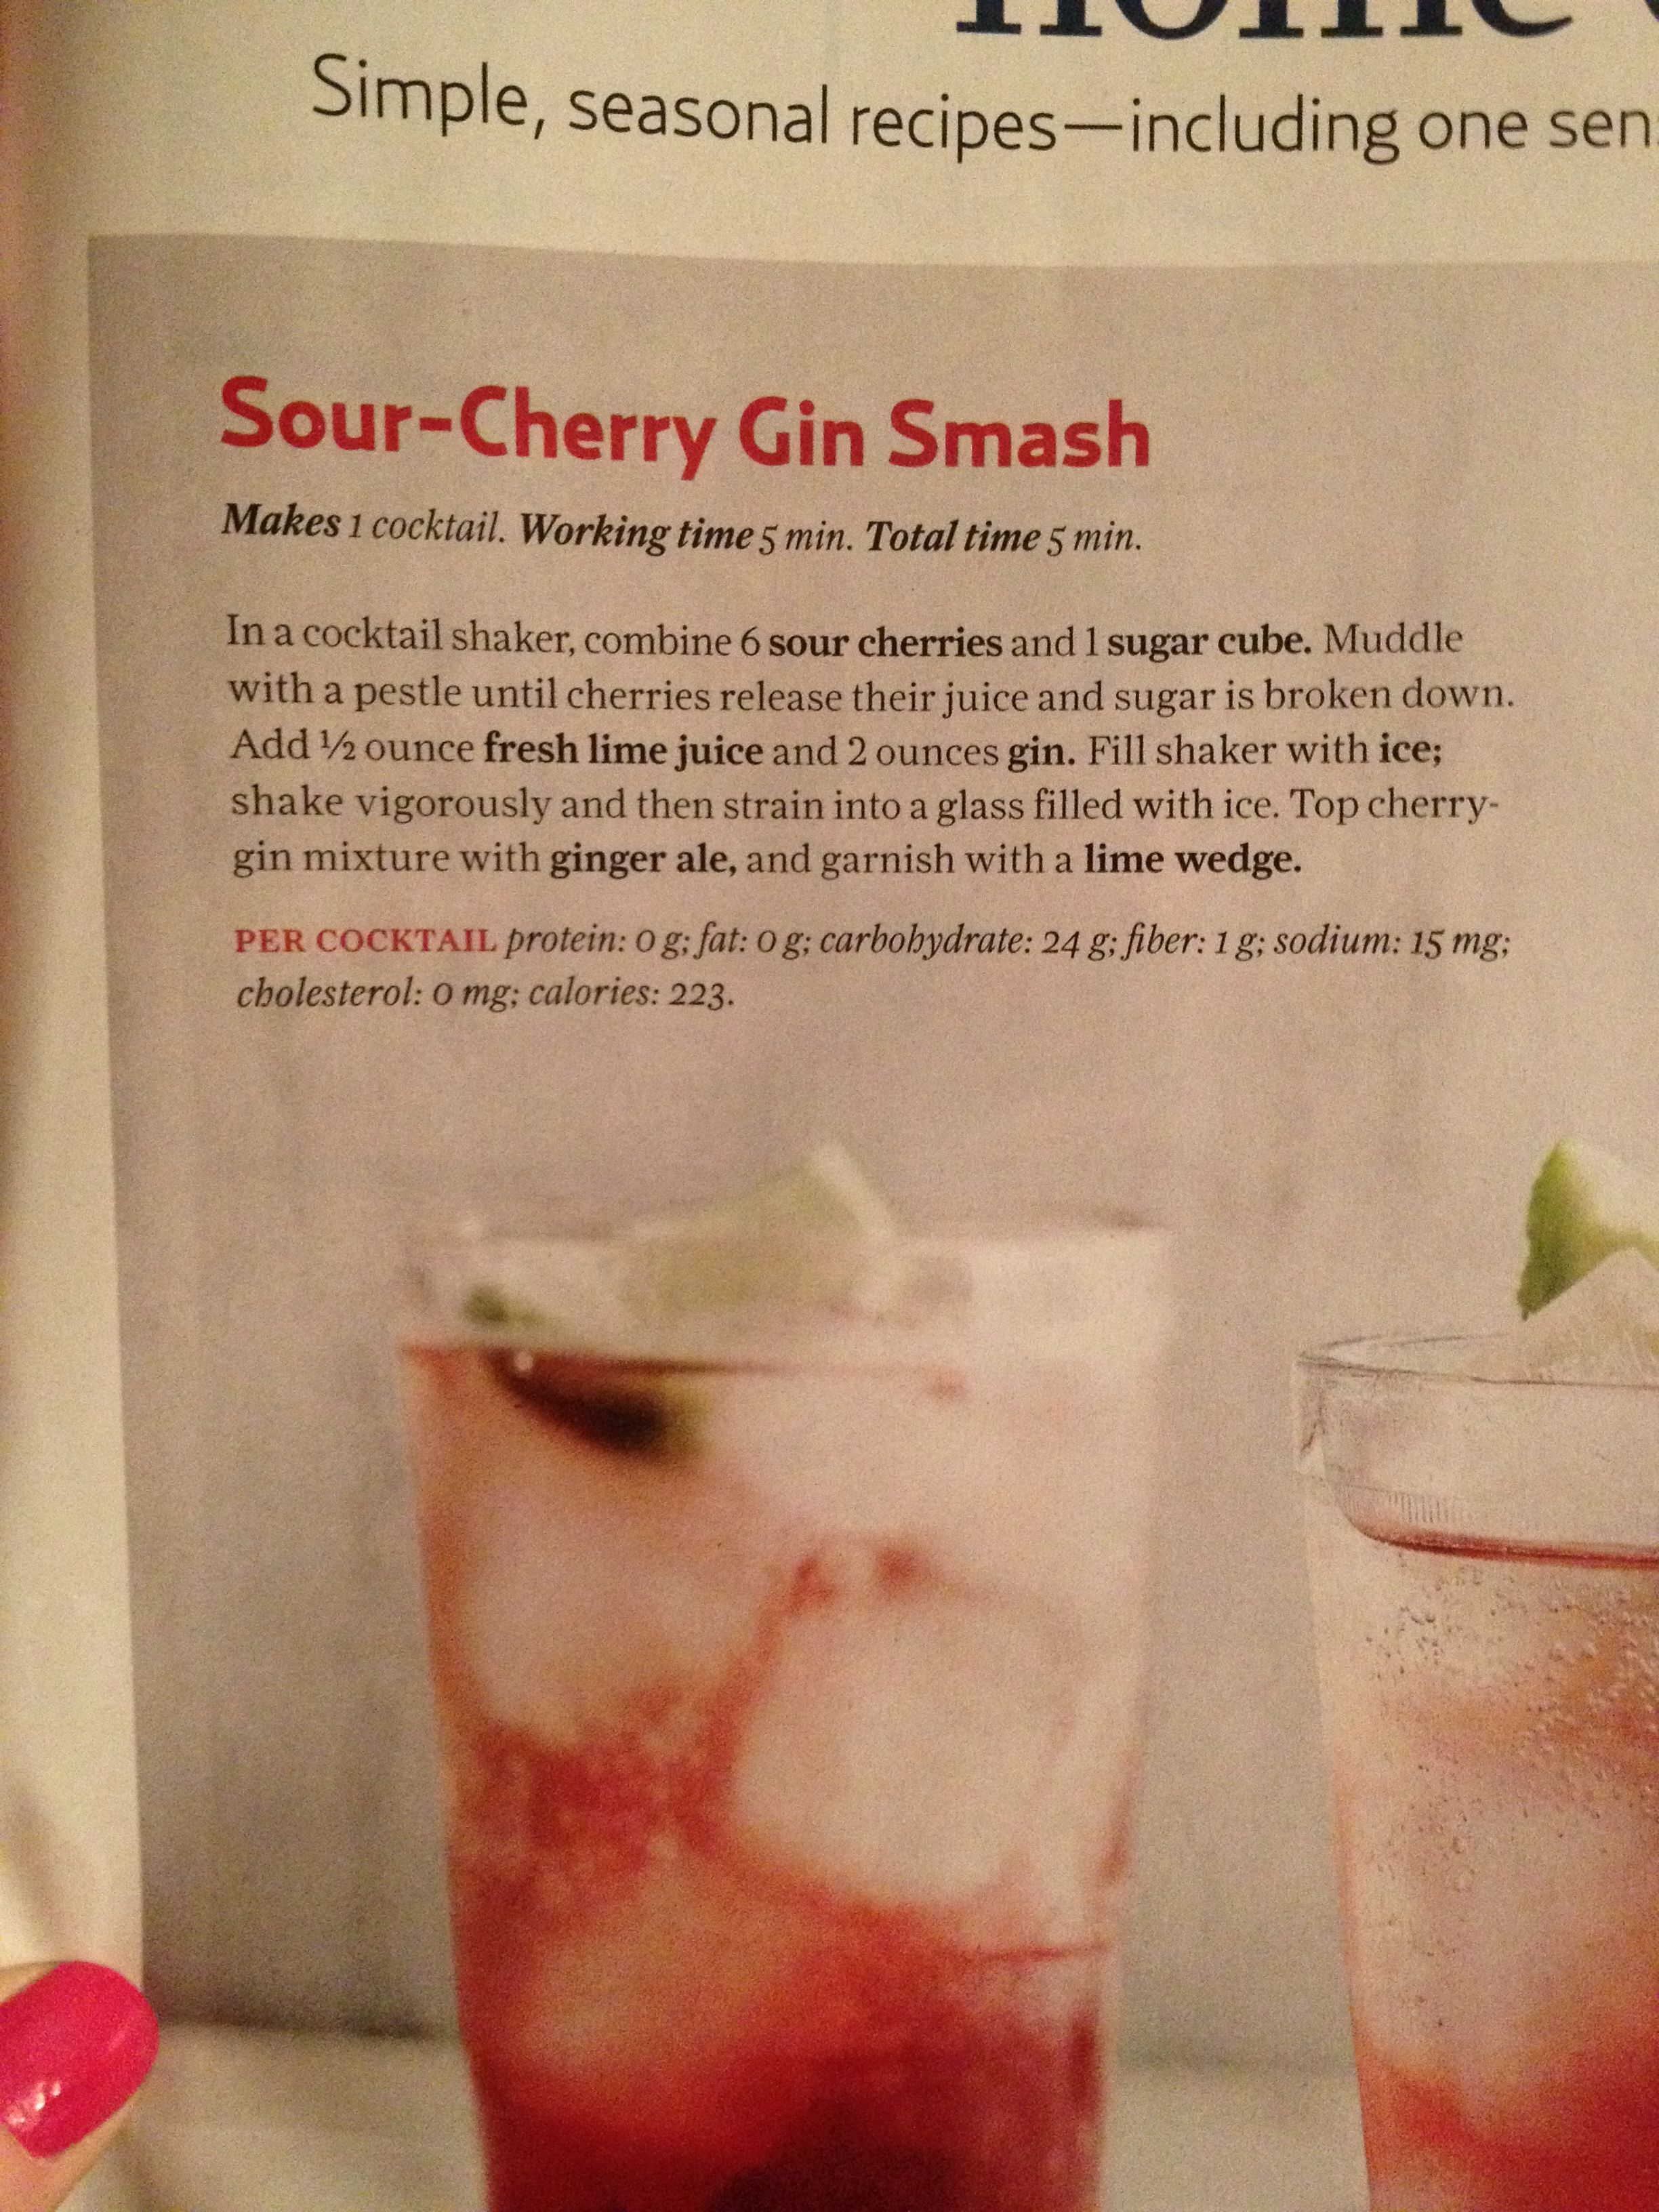 Sour-Cherry Gin Smash Sour-Cherry Gin Smash new images